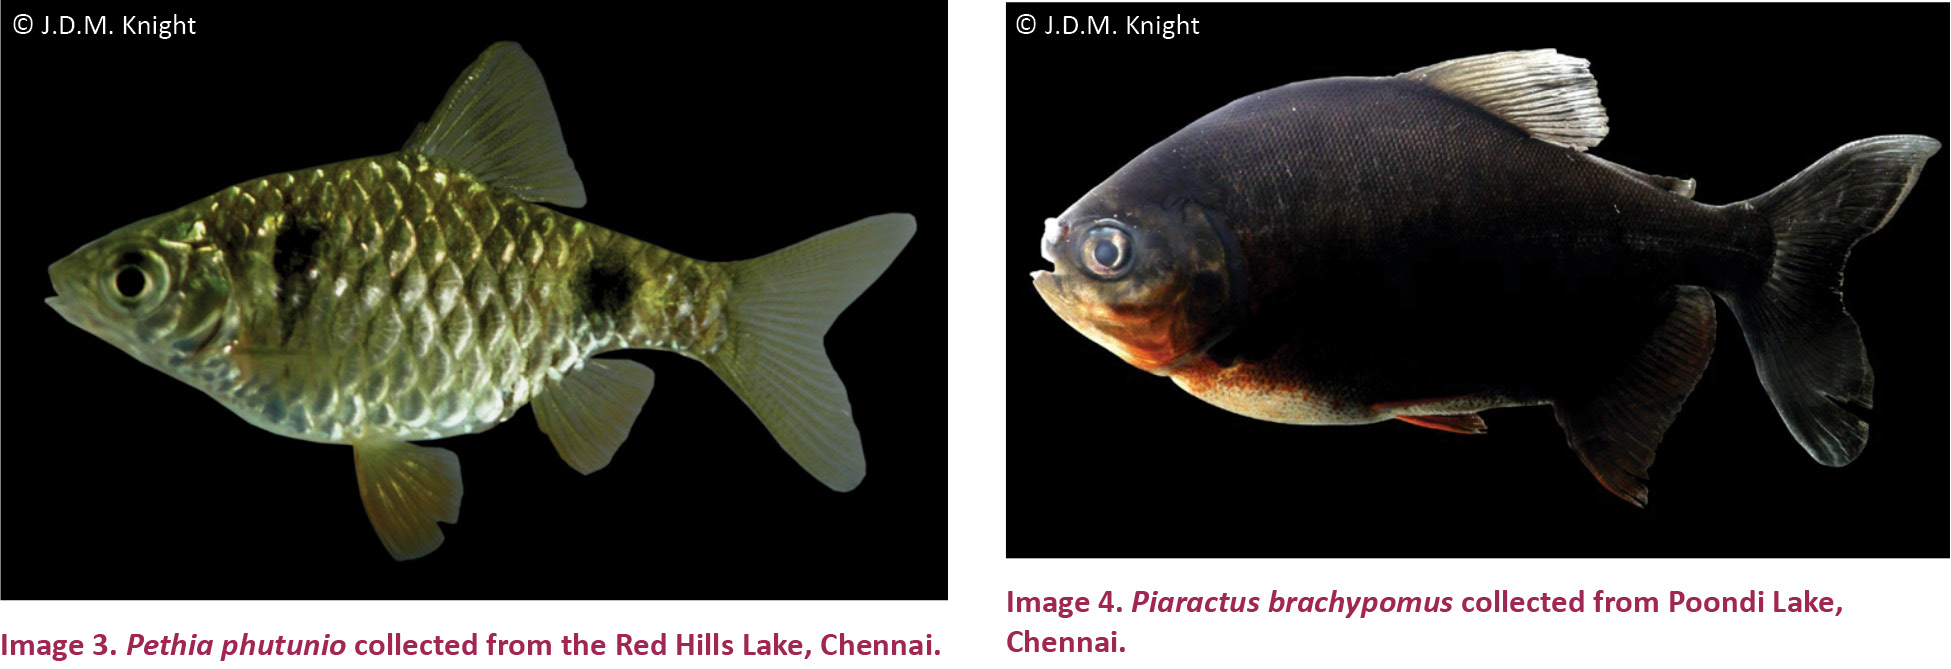 Fish Aquarium In Coimbatore - The propagule pressure theory clearly demonstrates the relationship between the frequency of fish sold in aquarium stores and their introduction and